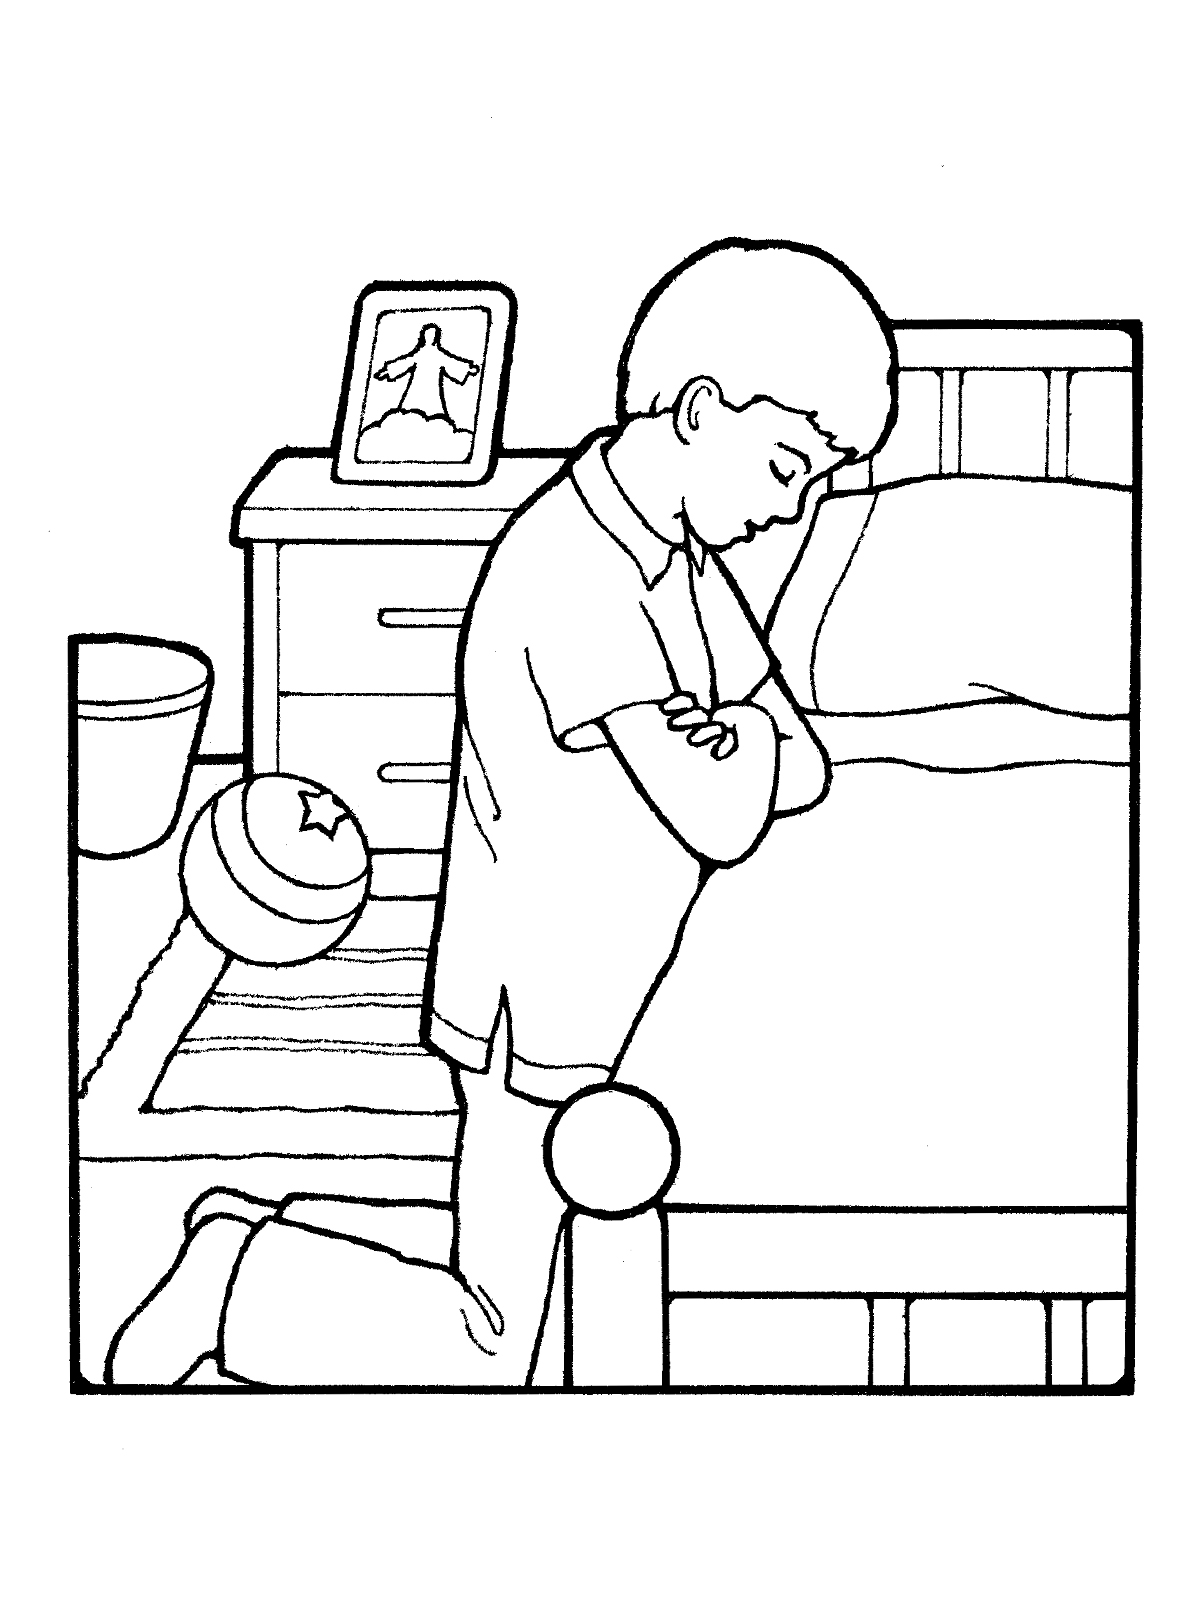 Boy Praying at Bedside